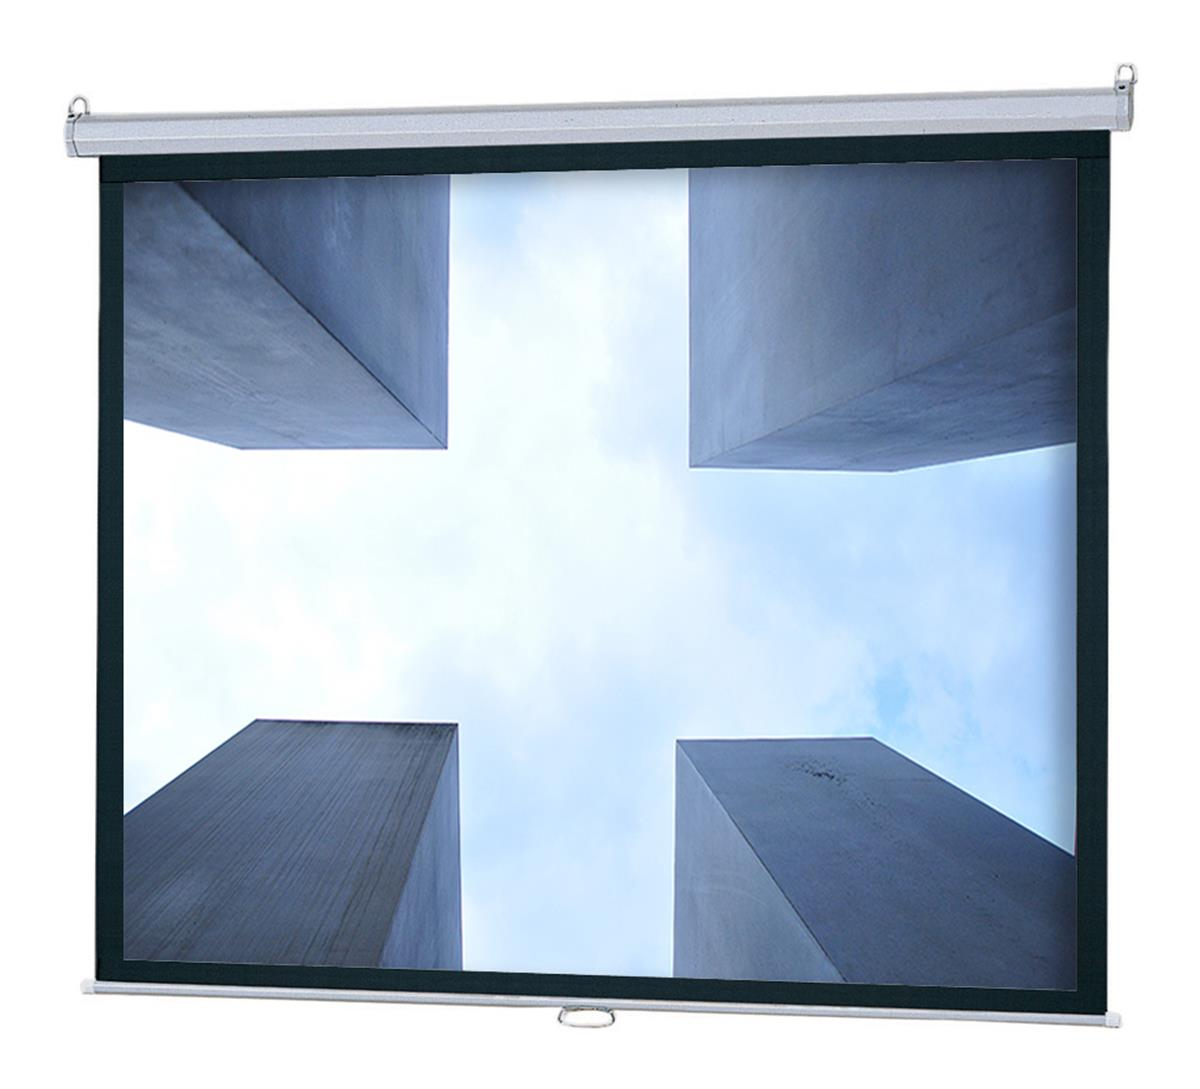 Hanging Projector Screen For Ceiling Or Wall Mount Use